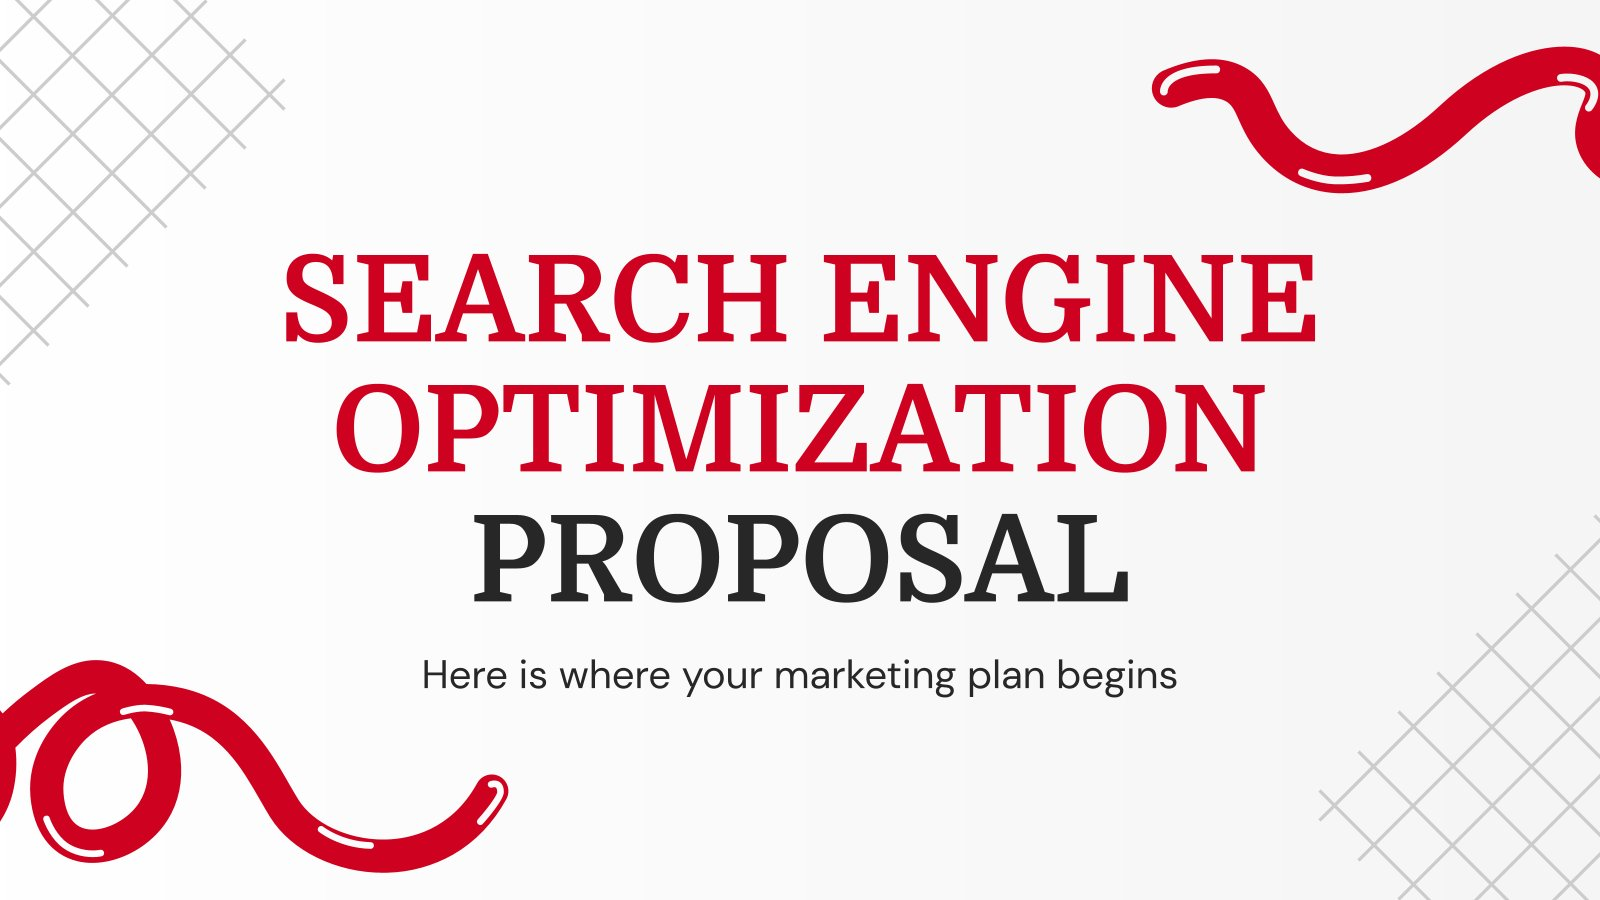 Search Engine Optimization Proposal presentation template